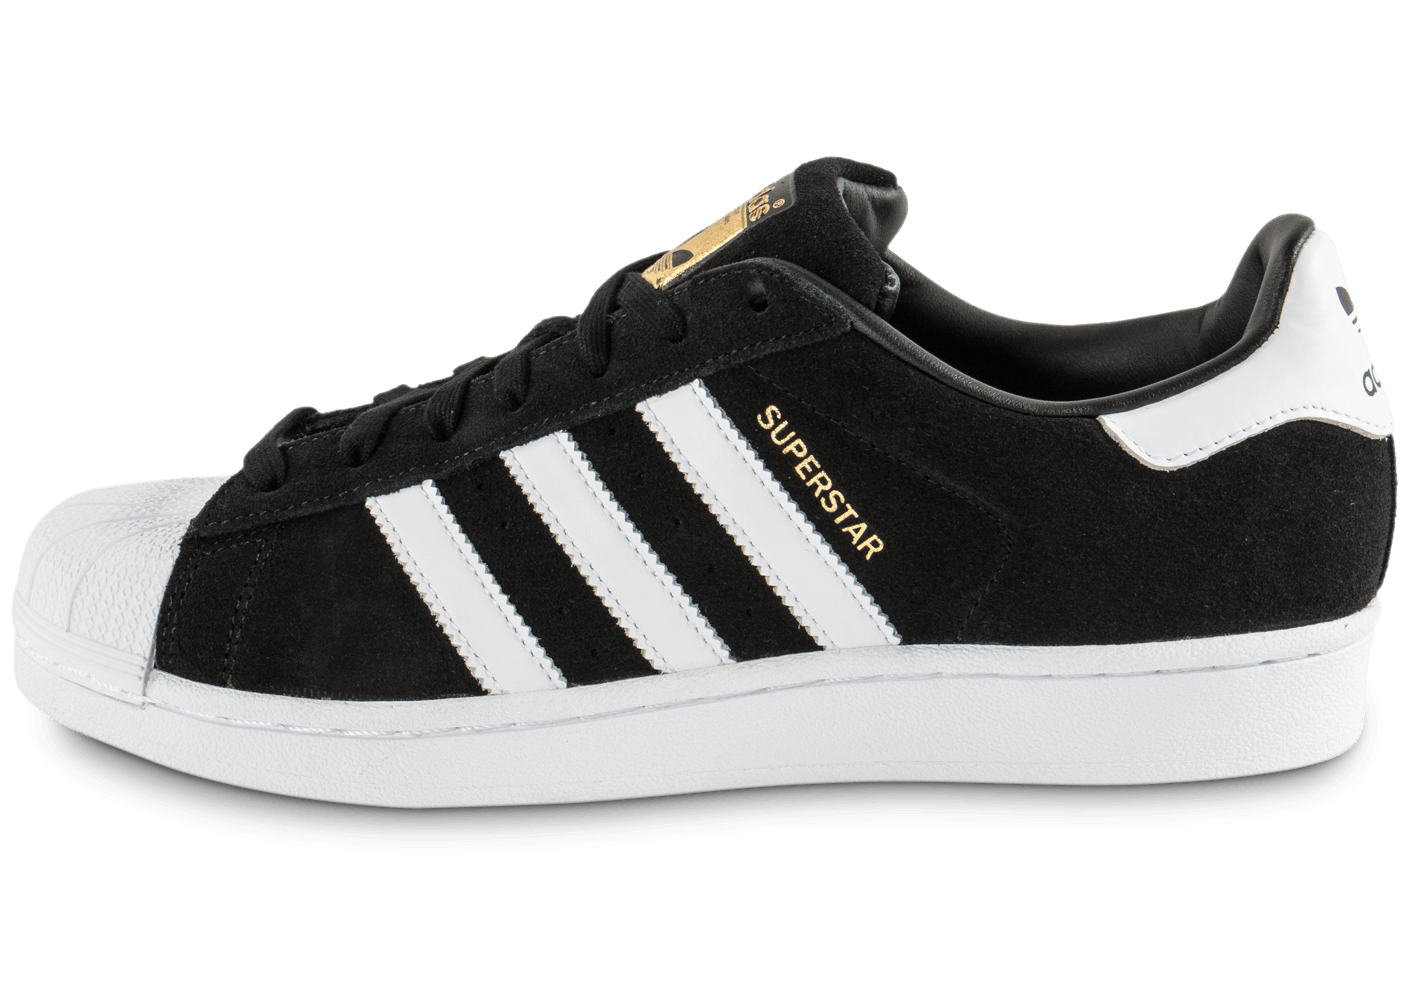 adidas superstar suede noire chaussures homme chausport. Black Bedroom Furniture Sets. Home Design Ideas